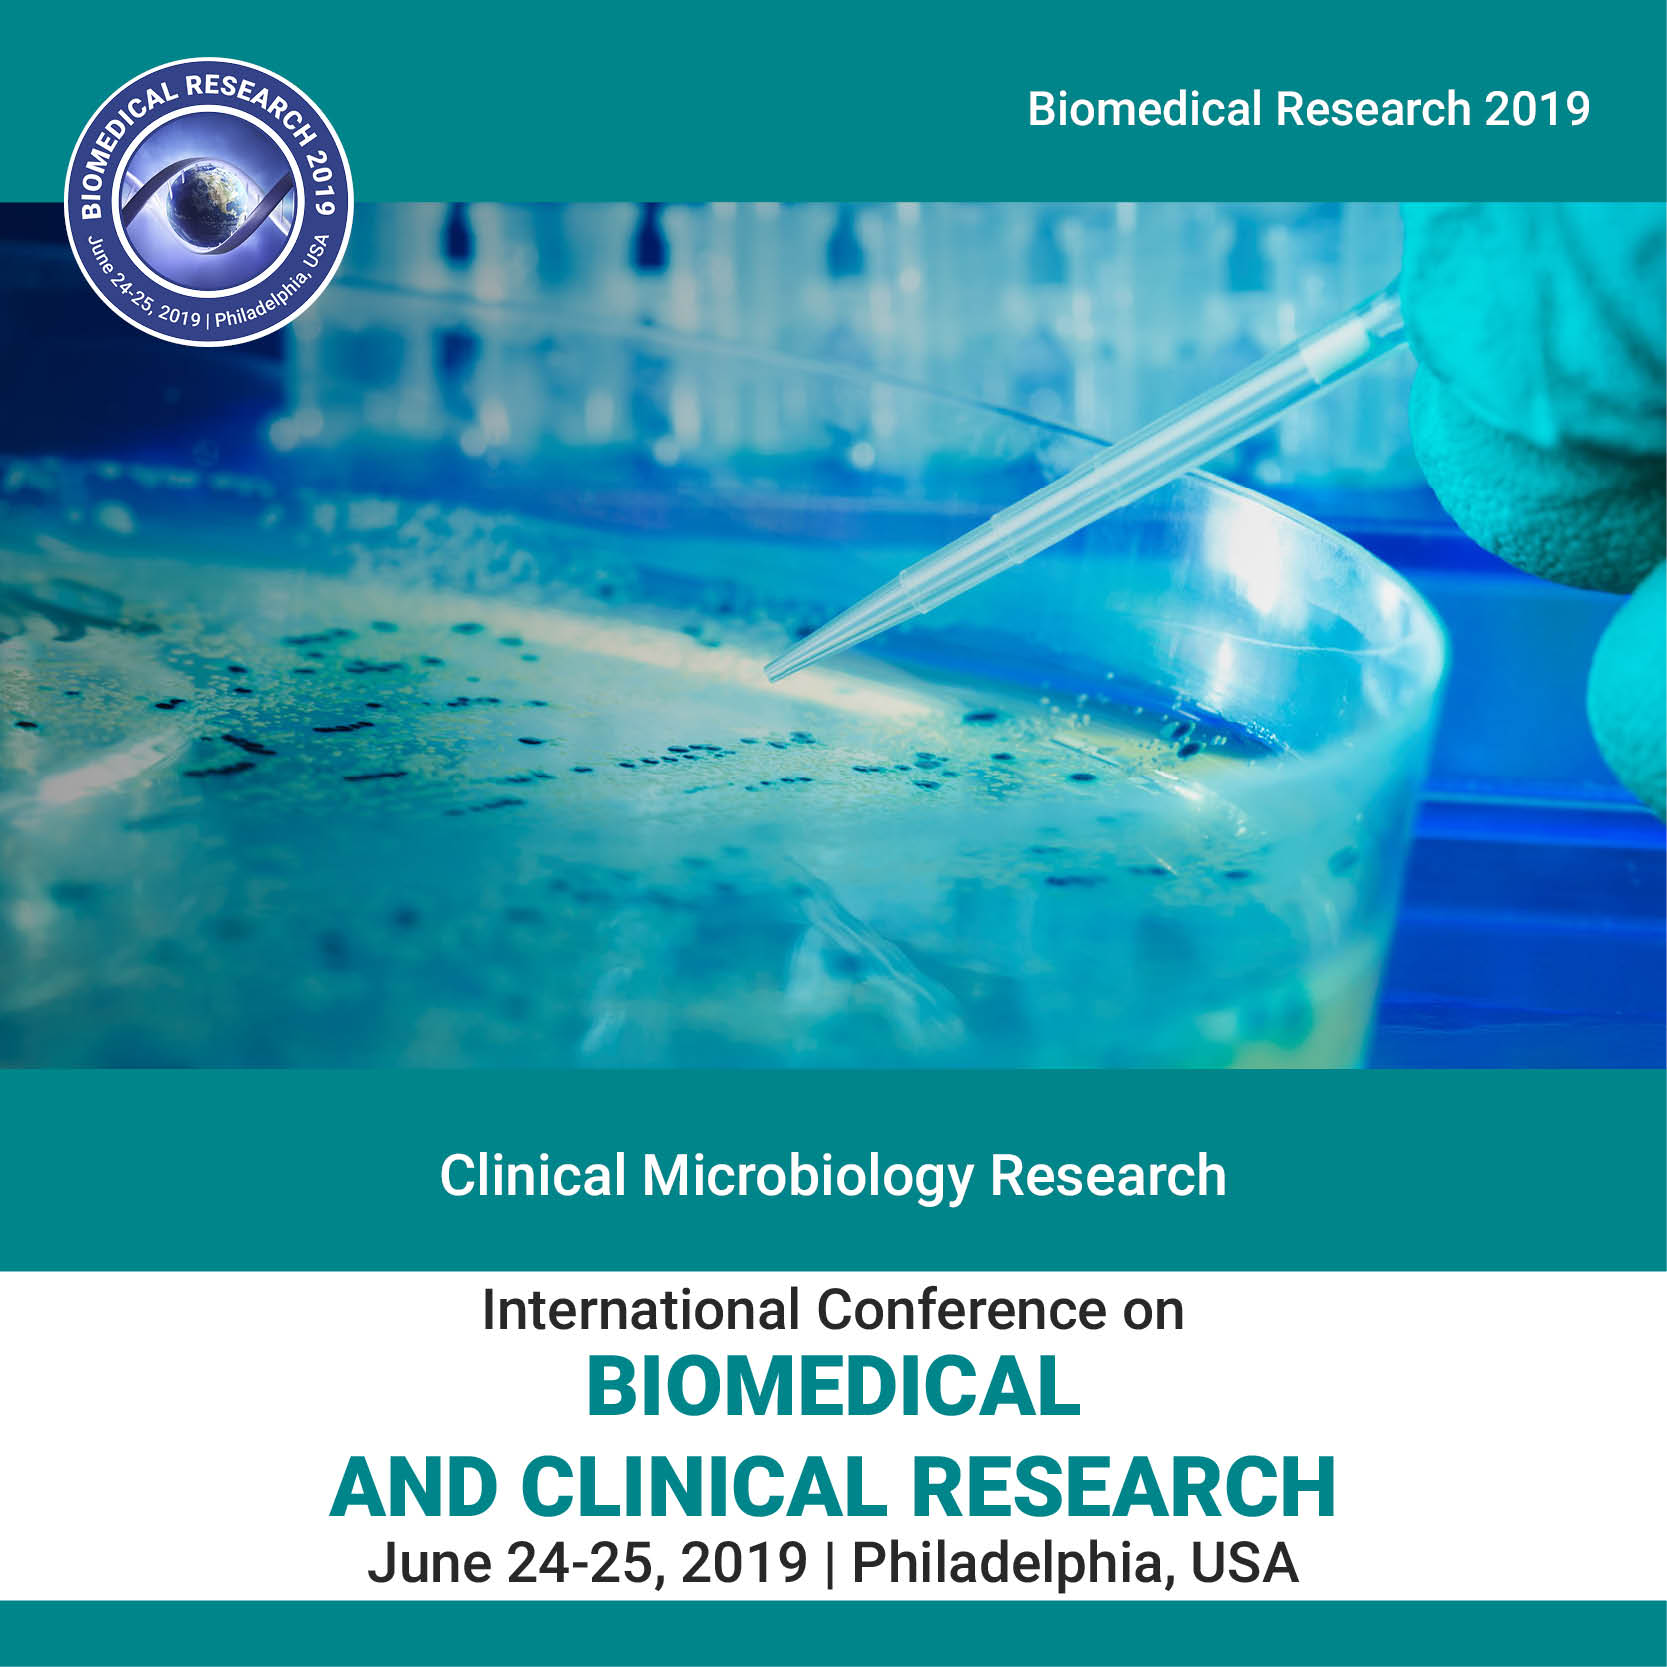 Clinical Microbiology Research Photo